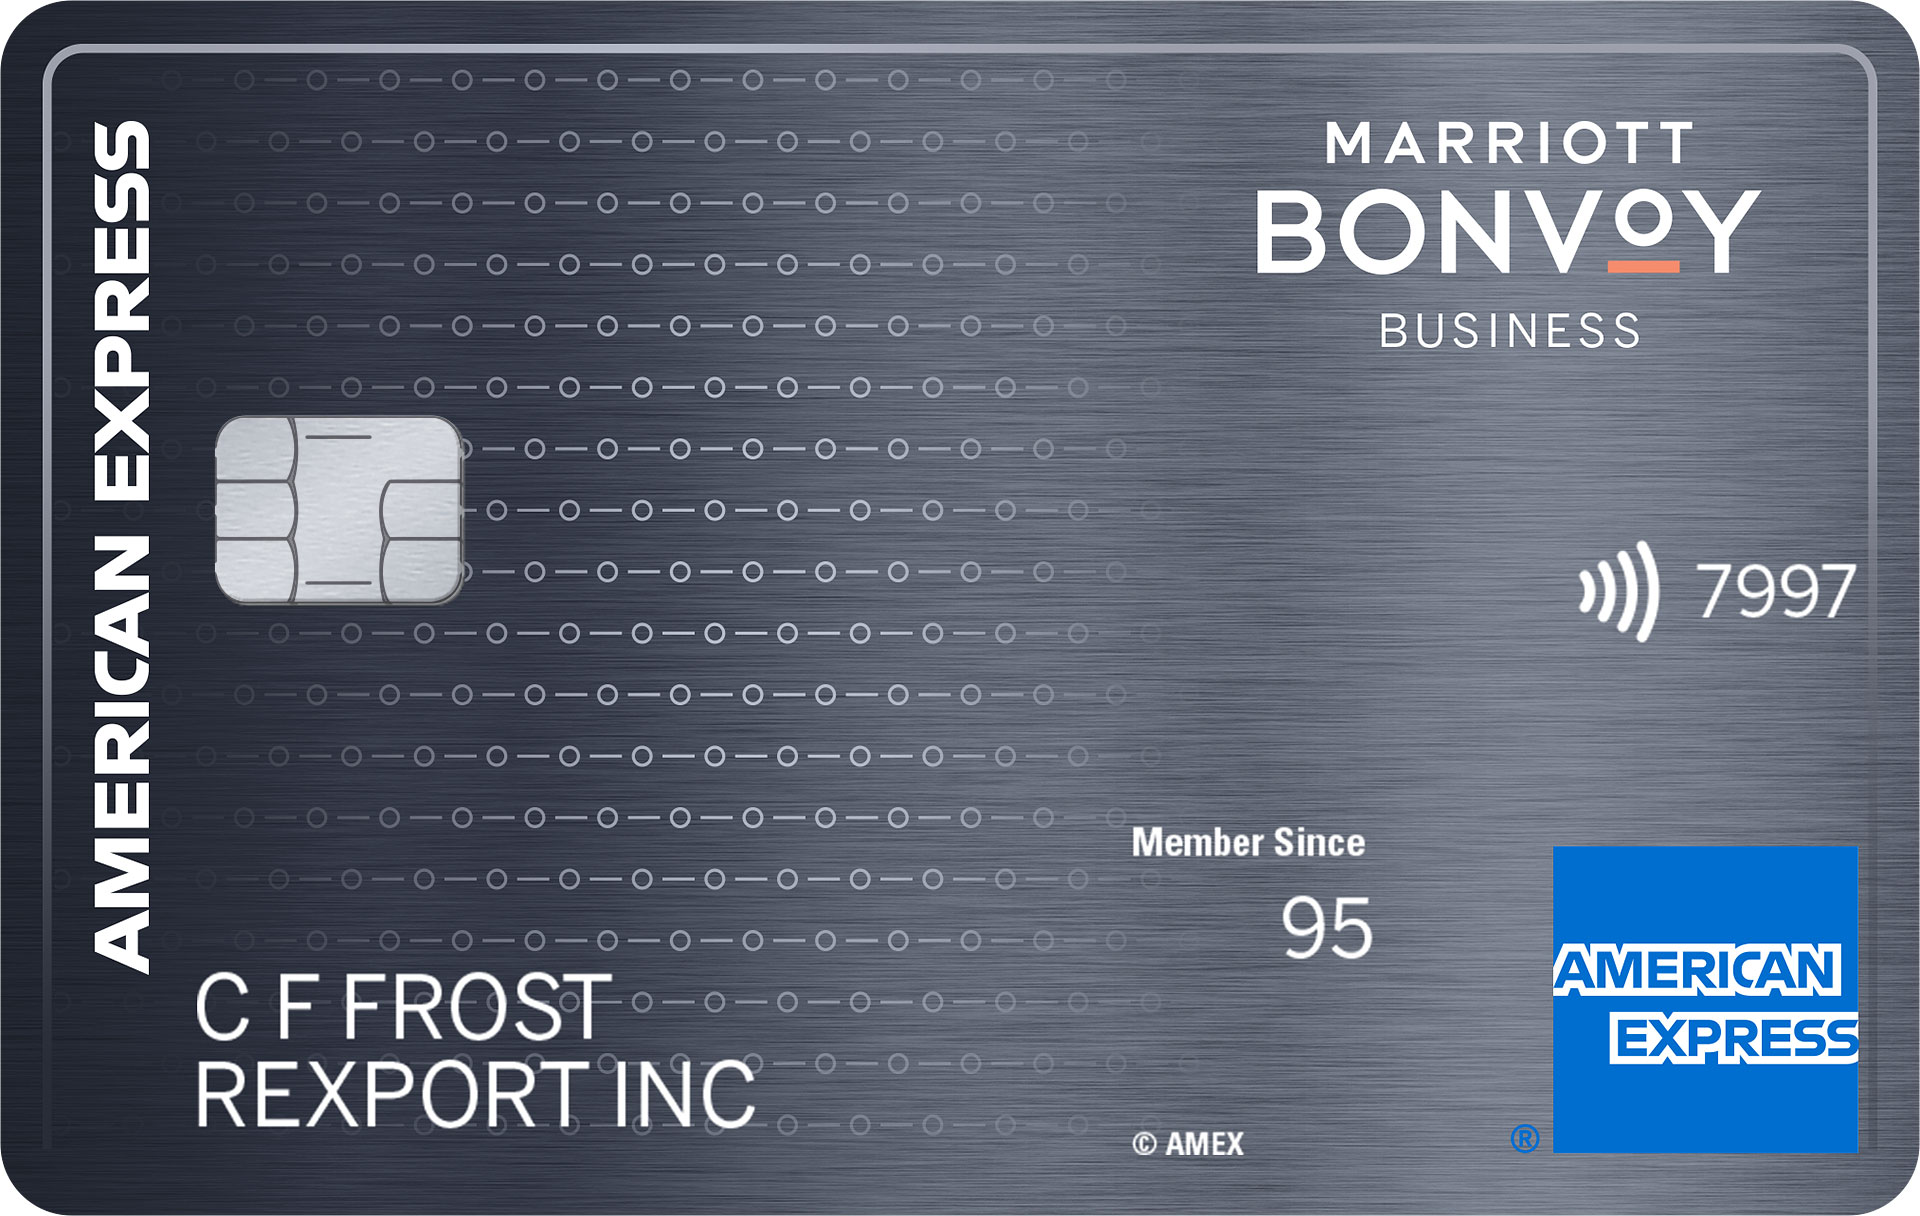 Marriott_Bonvoy_Business_American_Express_Card